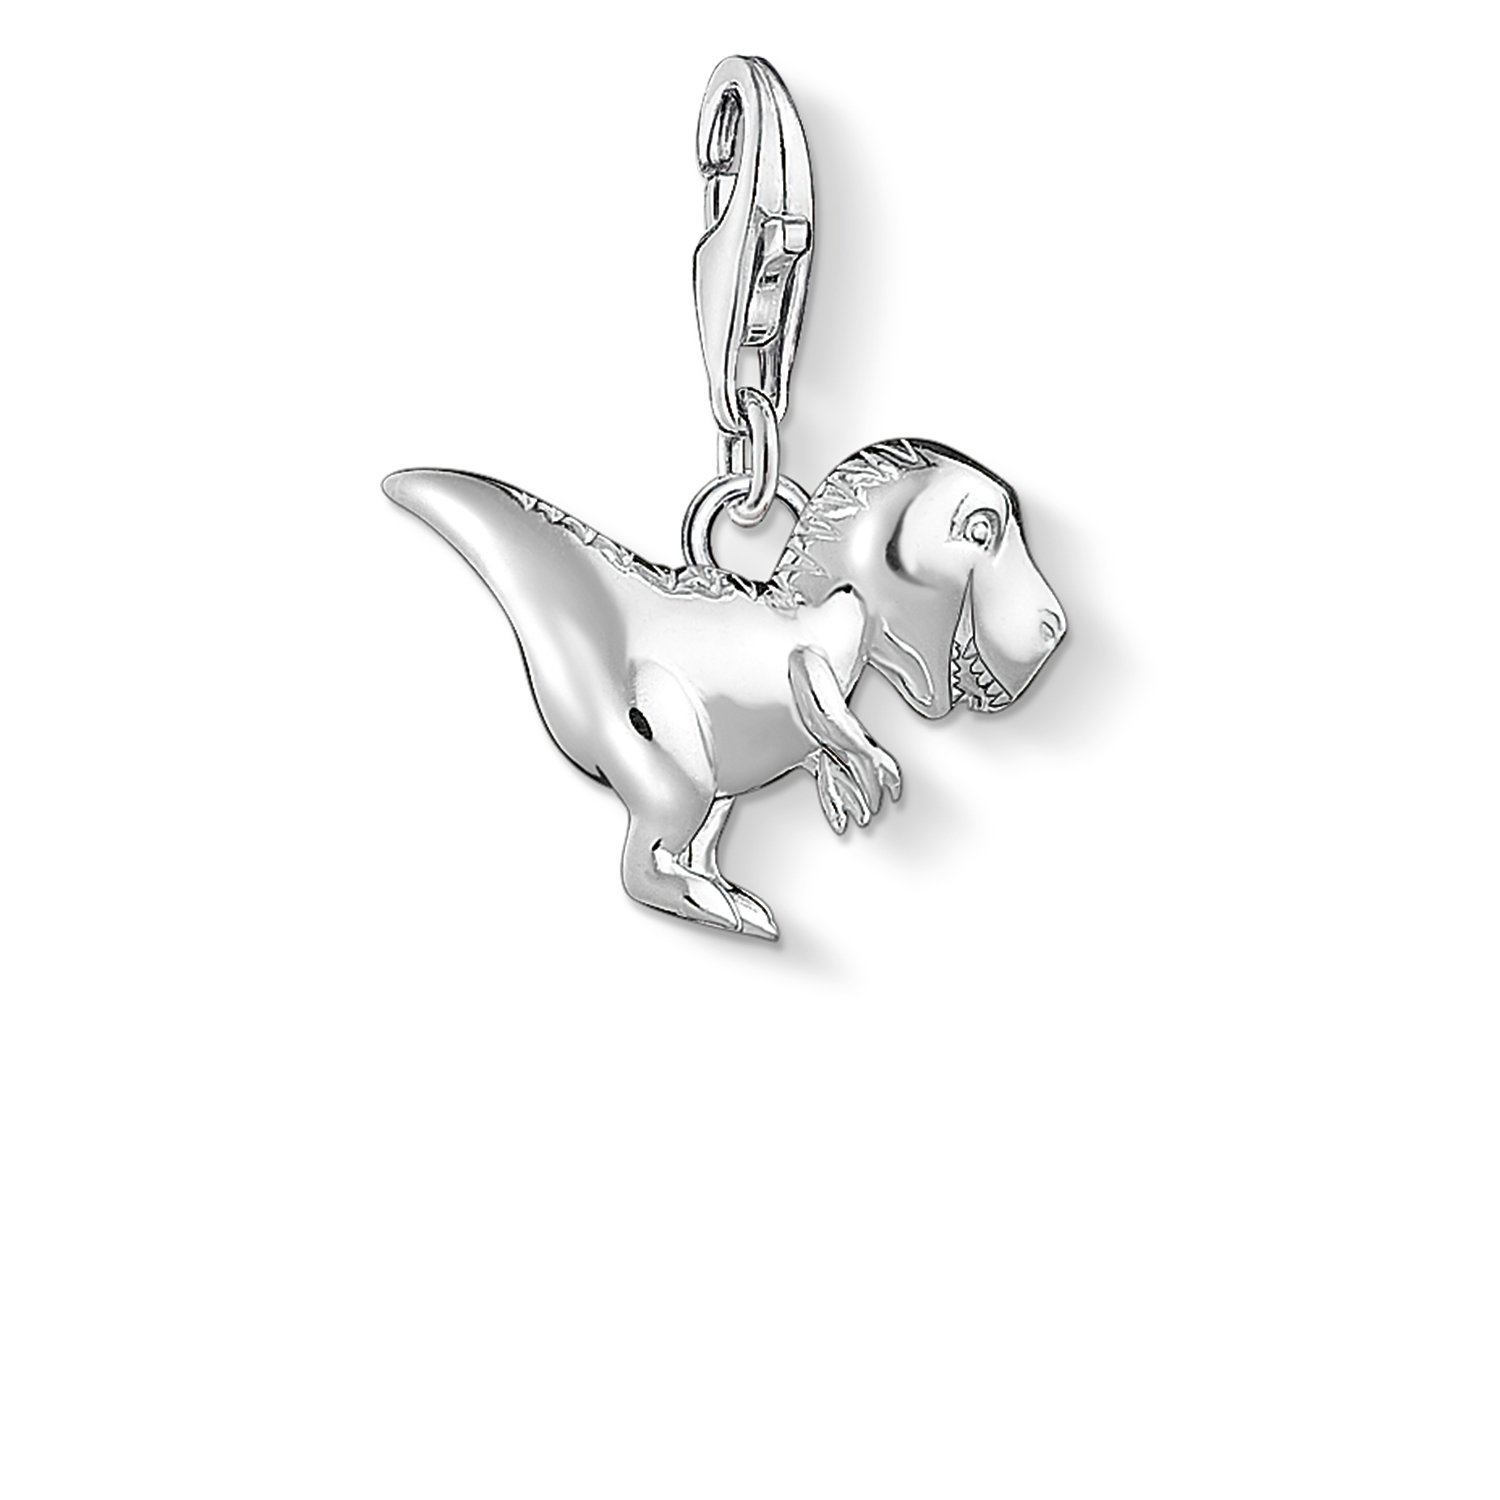 Thomas Sabo Clasp Charms 925 Sterling Silber 1474 001 12